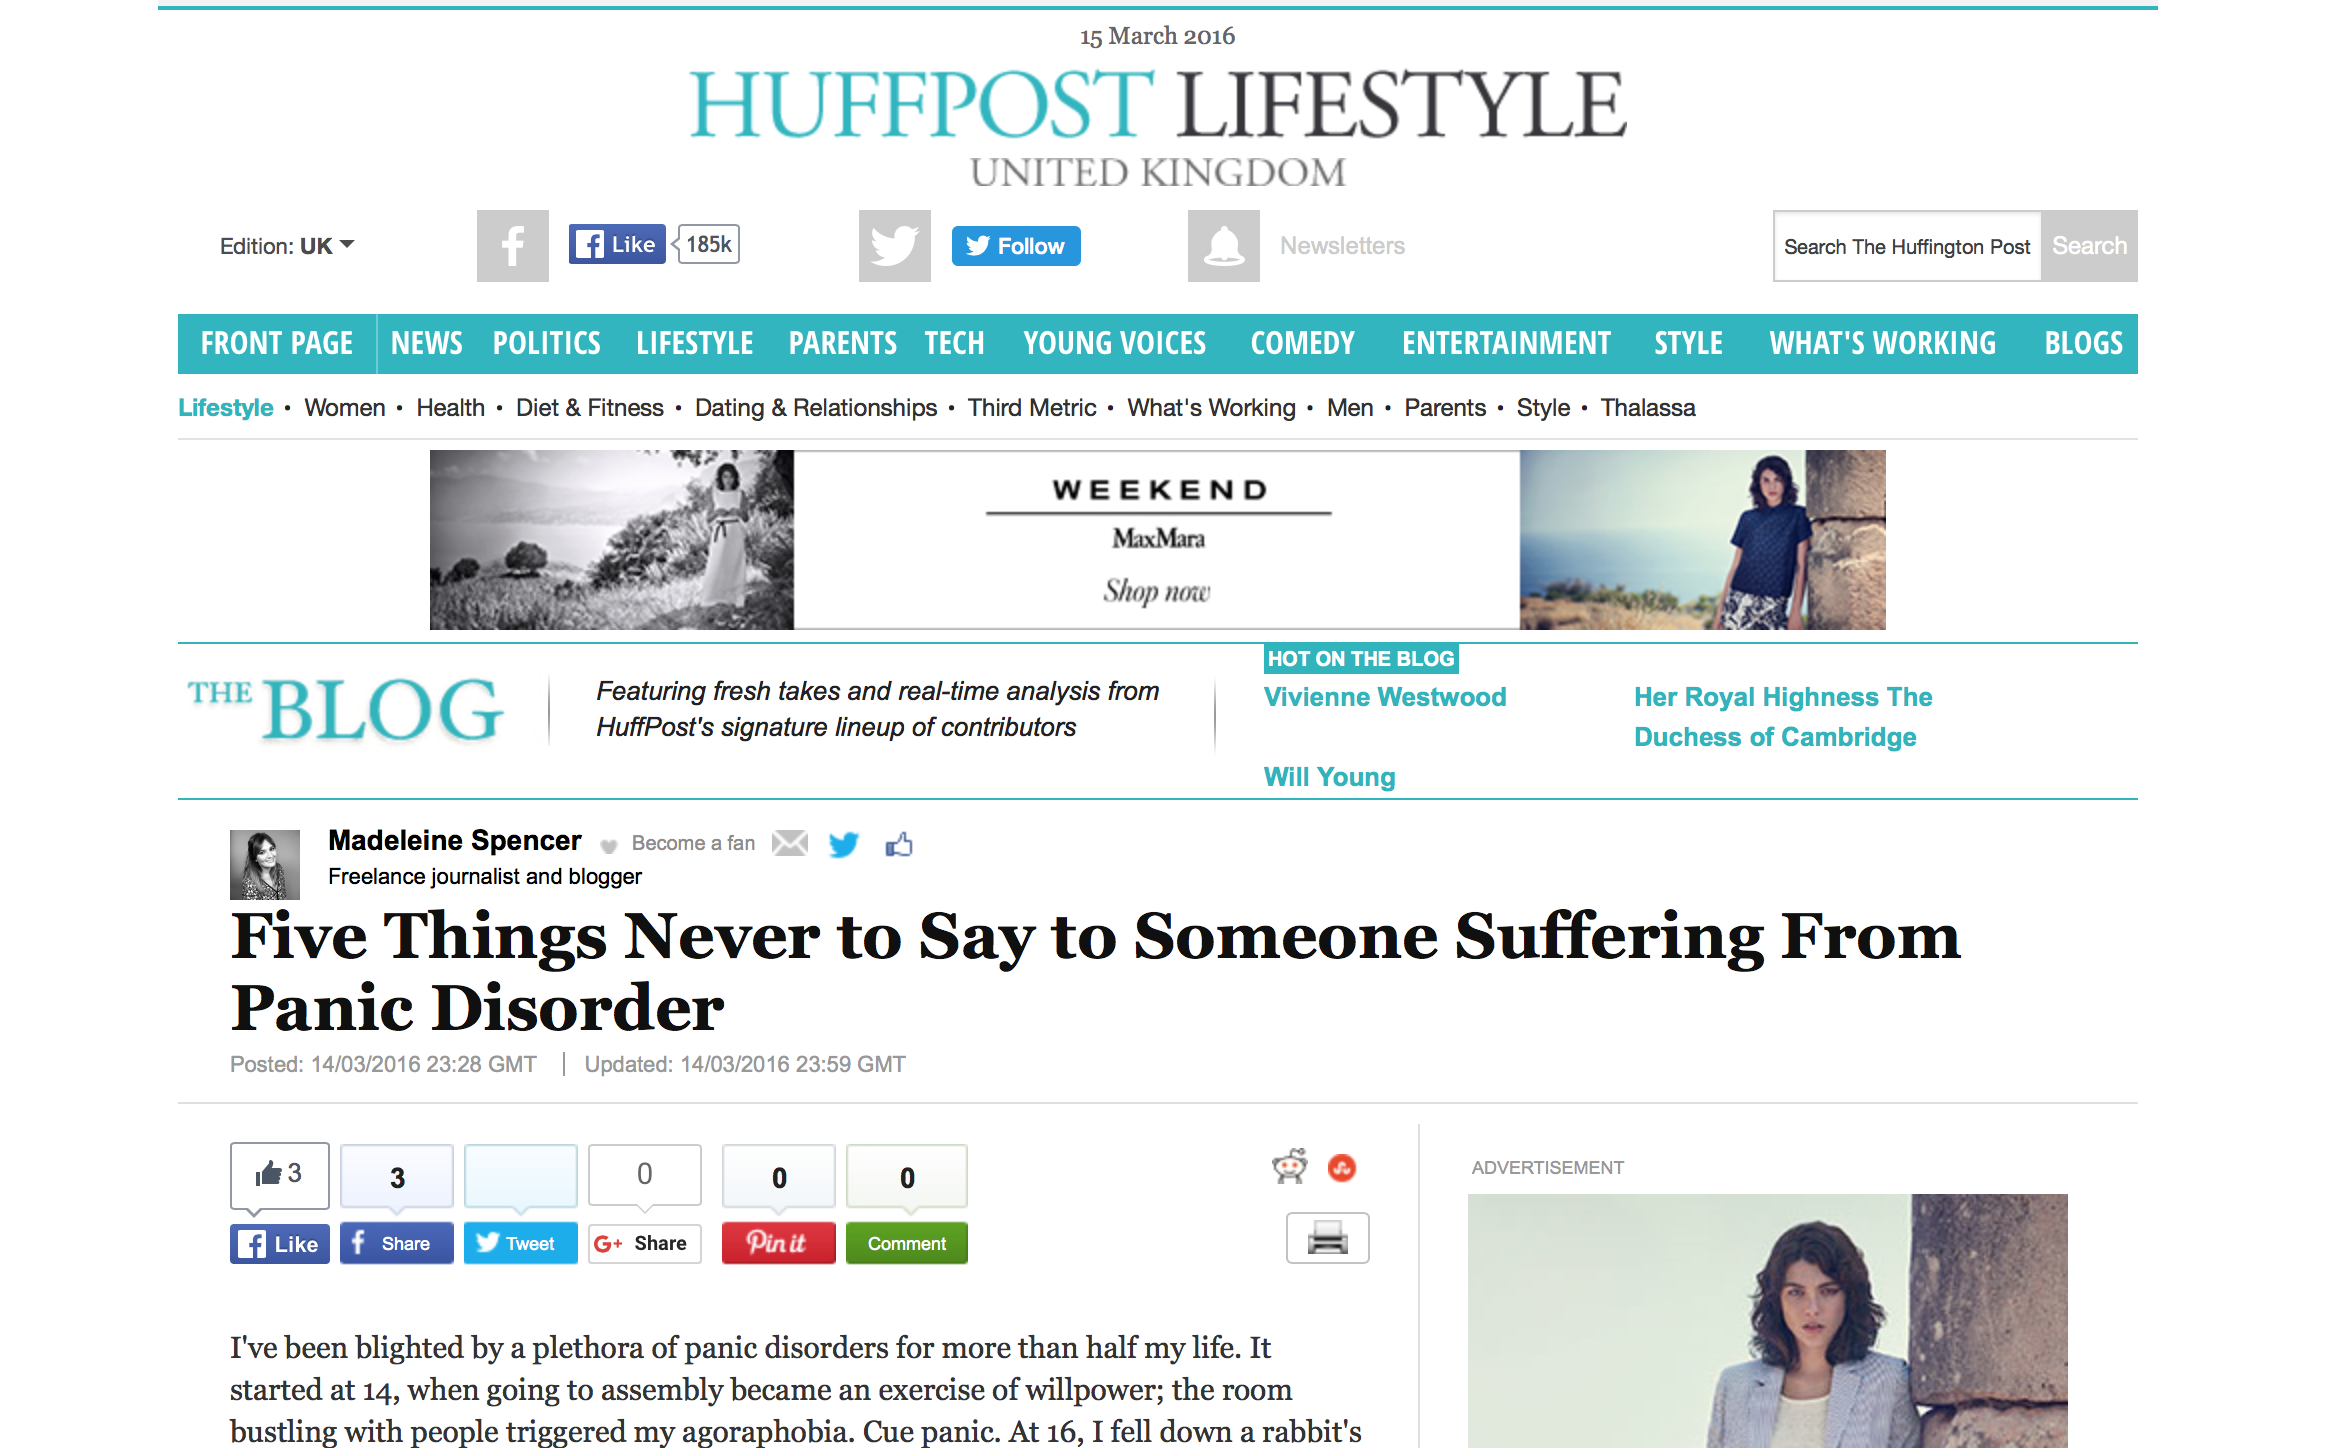 Panic Disorder for The Huffington Post